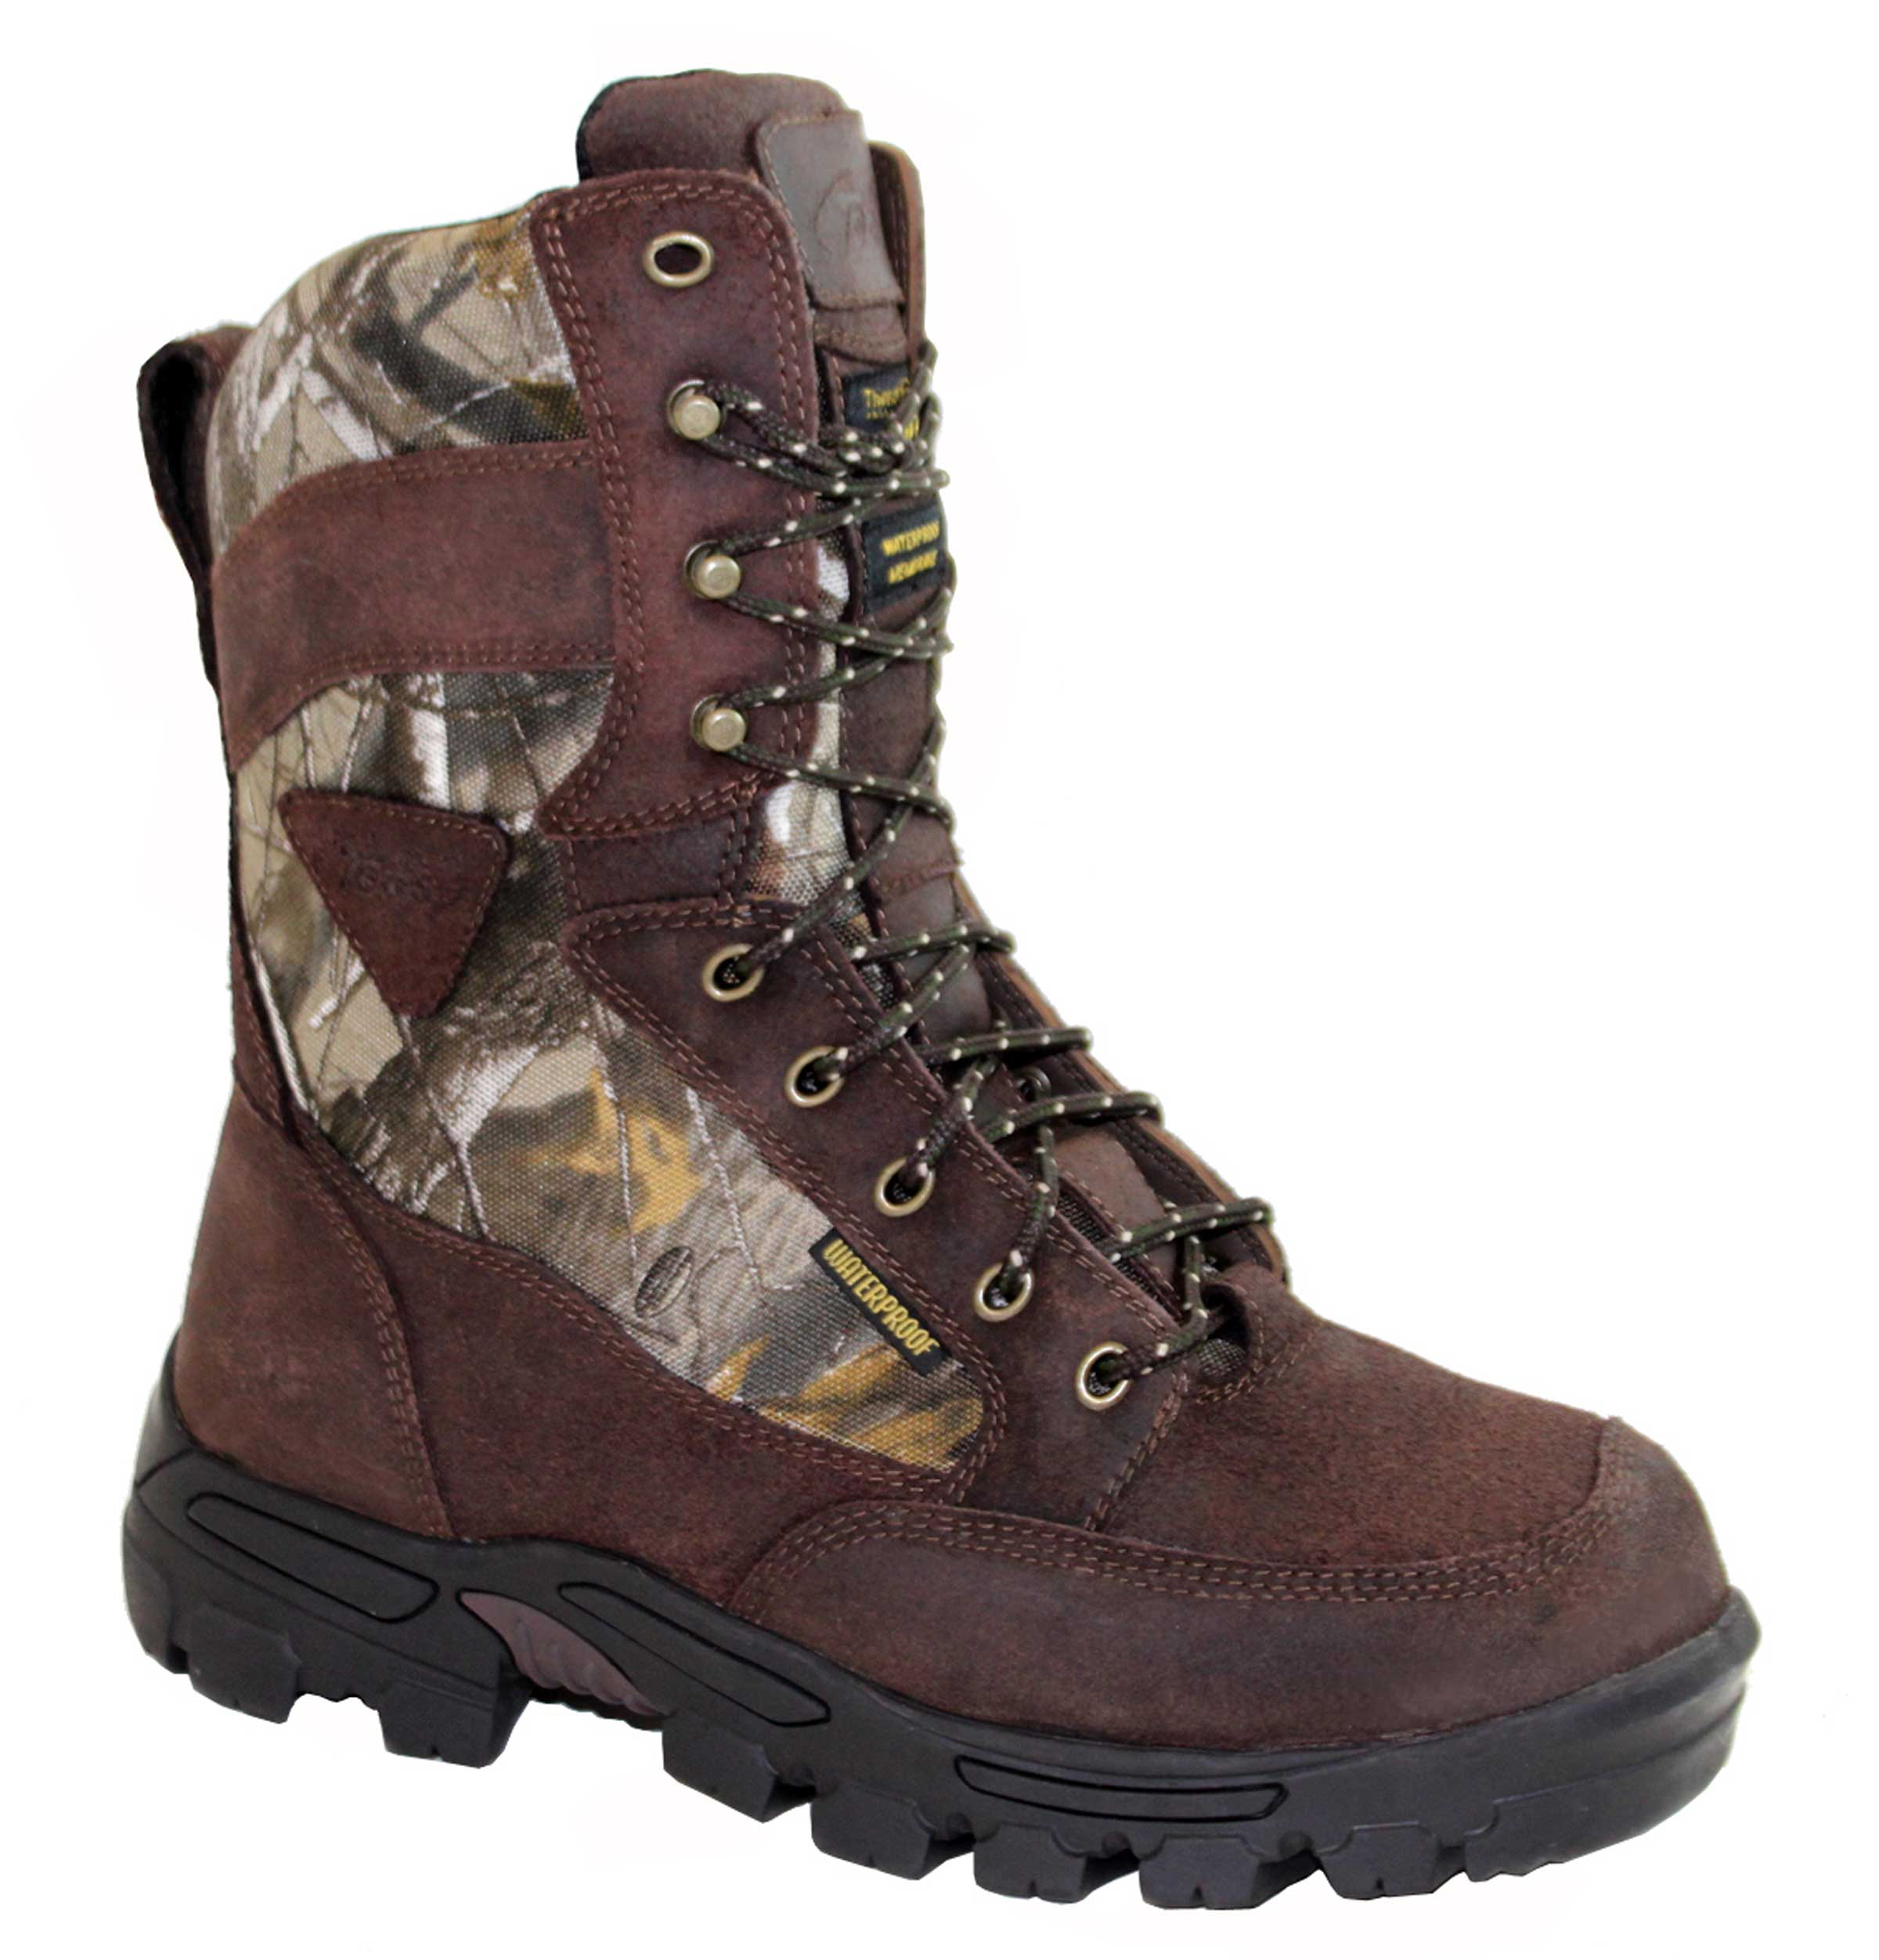 "Adtec Men's 11"" Oiled Leather Camo Hunting Boot, Camo - 7.5 M"